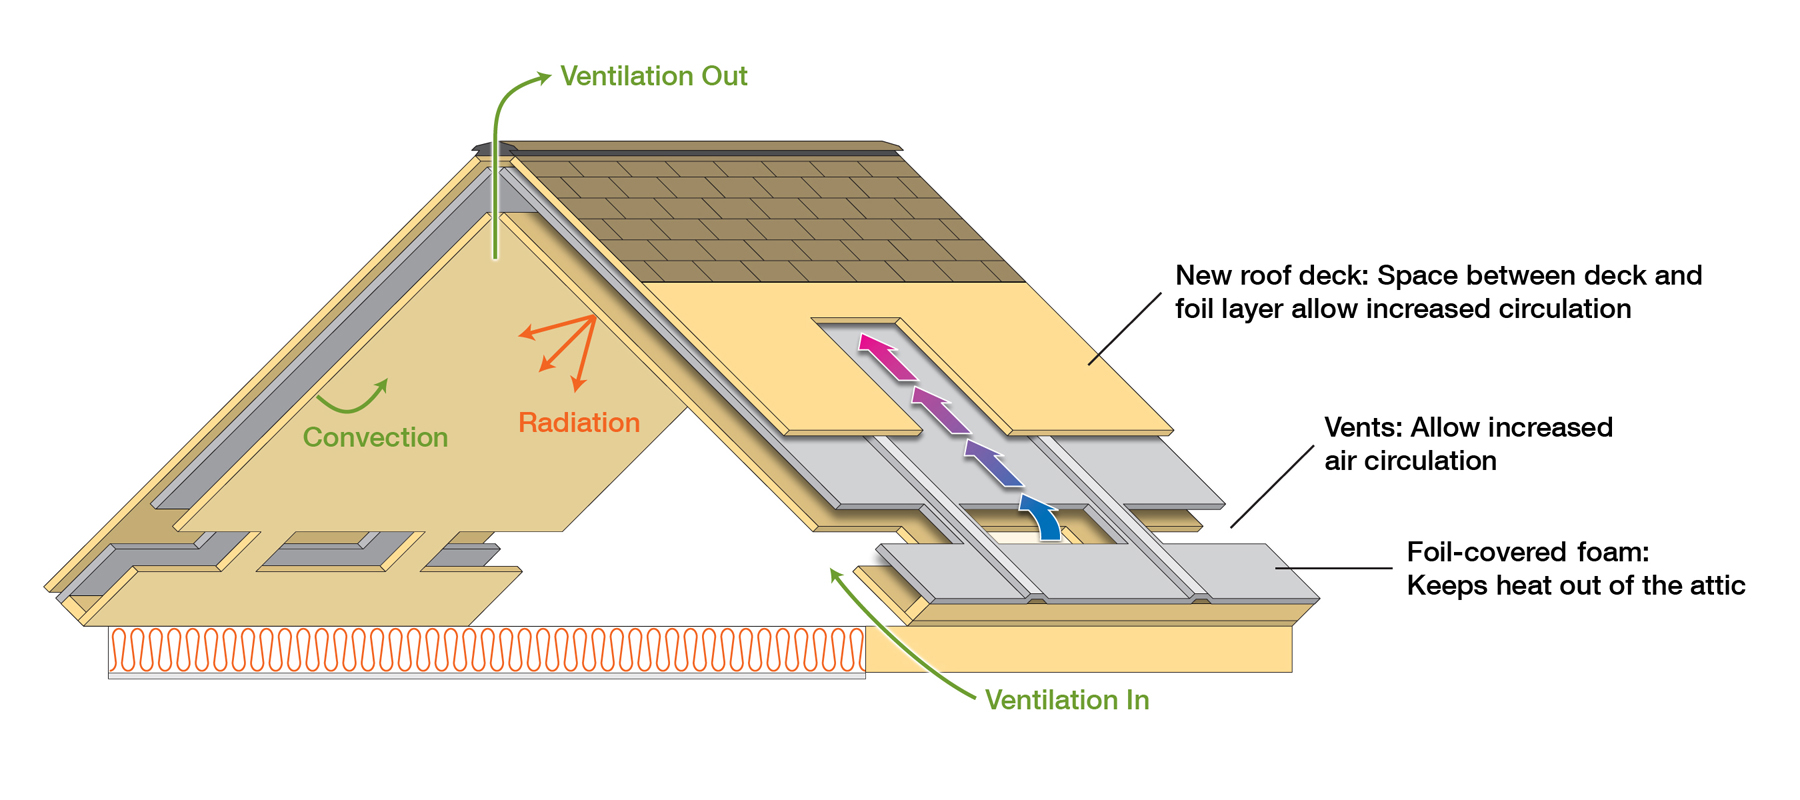 Ornl Roof And Attic Design Proves Efficient In Summer And